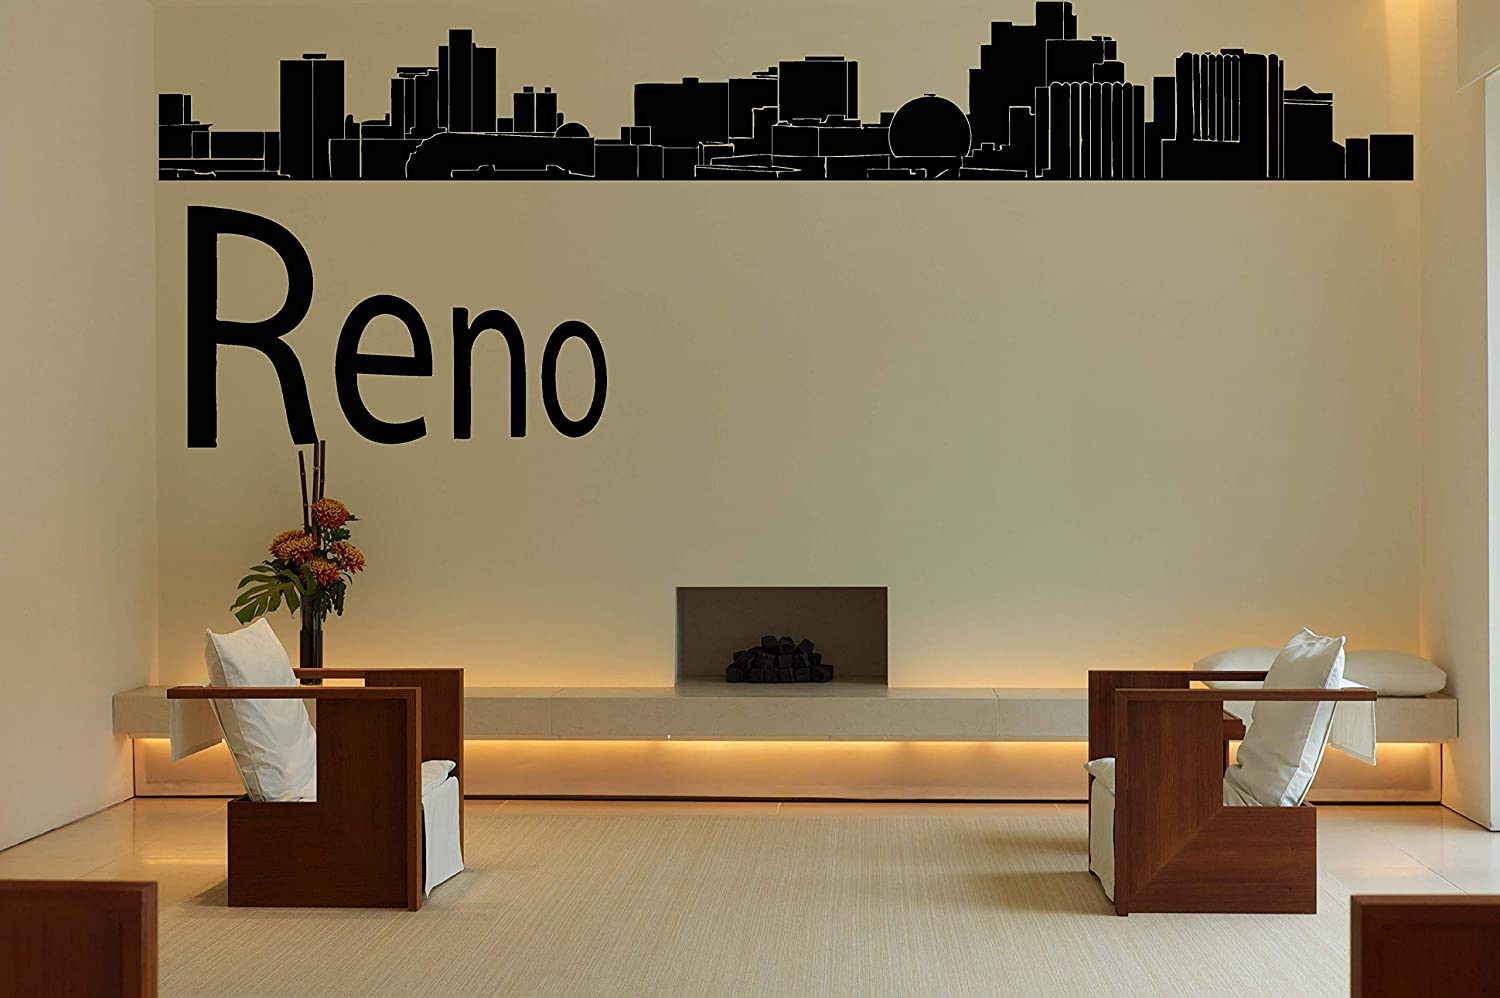 Amazon com wall decals decor reno city skyline decal usa vinyl sticker mural wall art wall decal home decor bedroom dorm decor custom room decor njs43